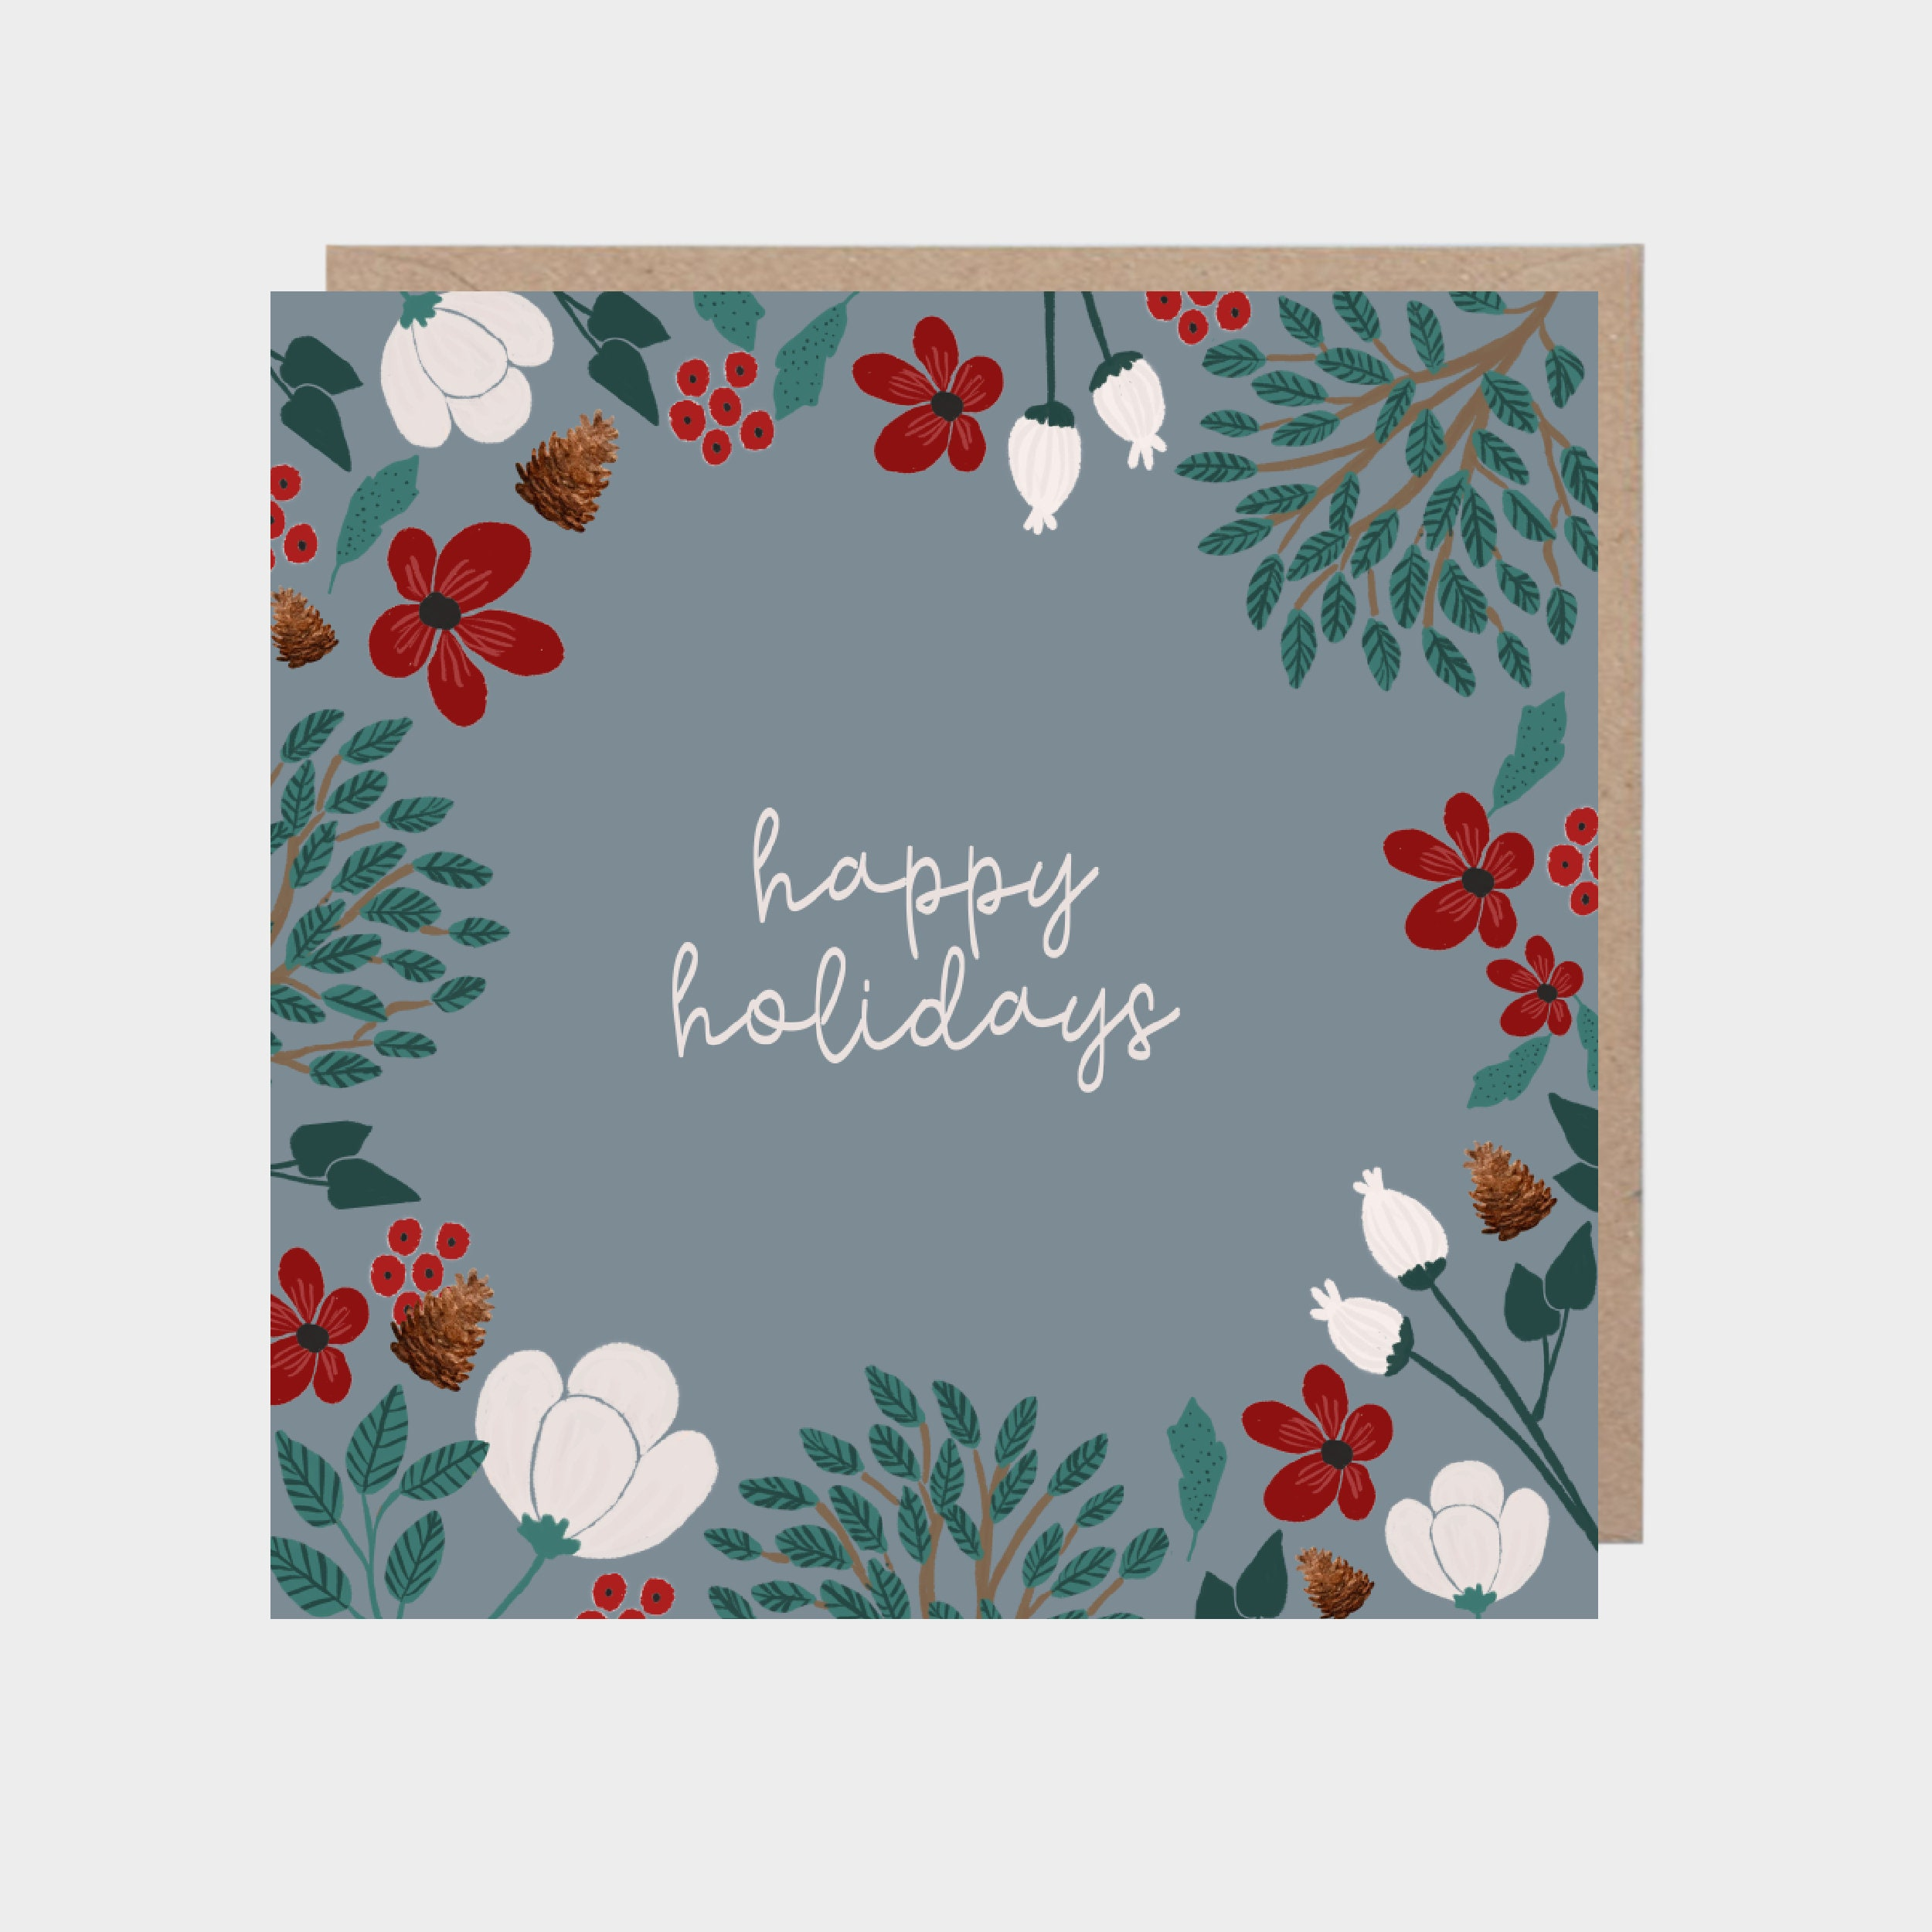 Square blue-grey card with a border of winter foliage and flowers, with a brown kraft envelope